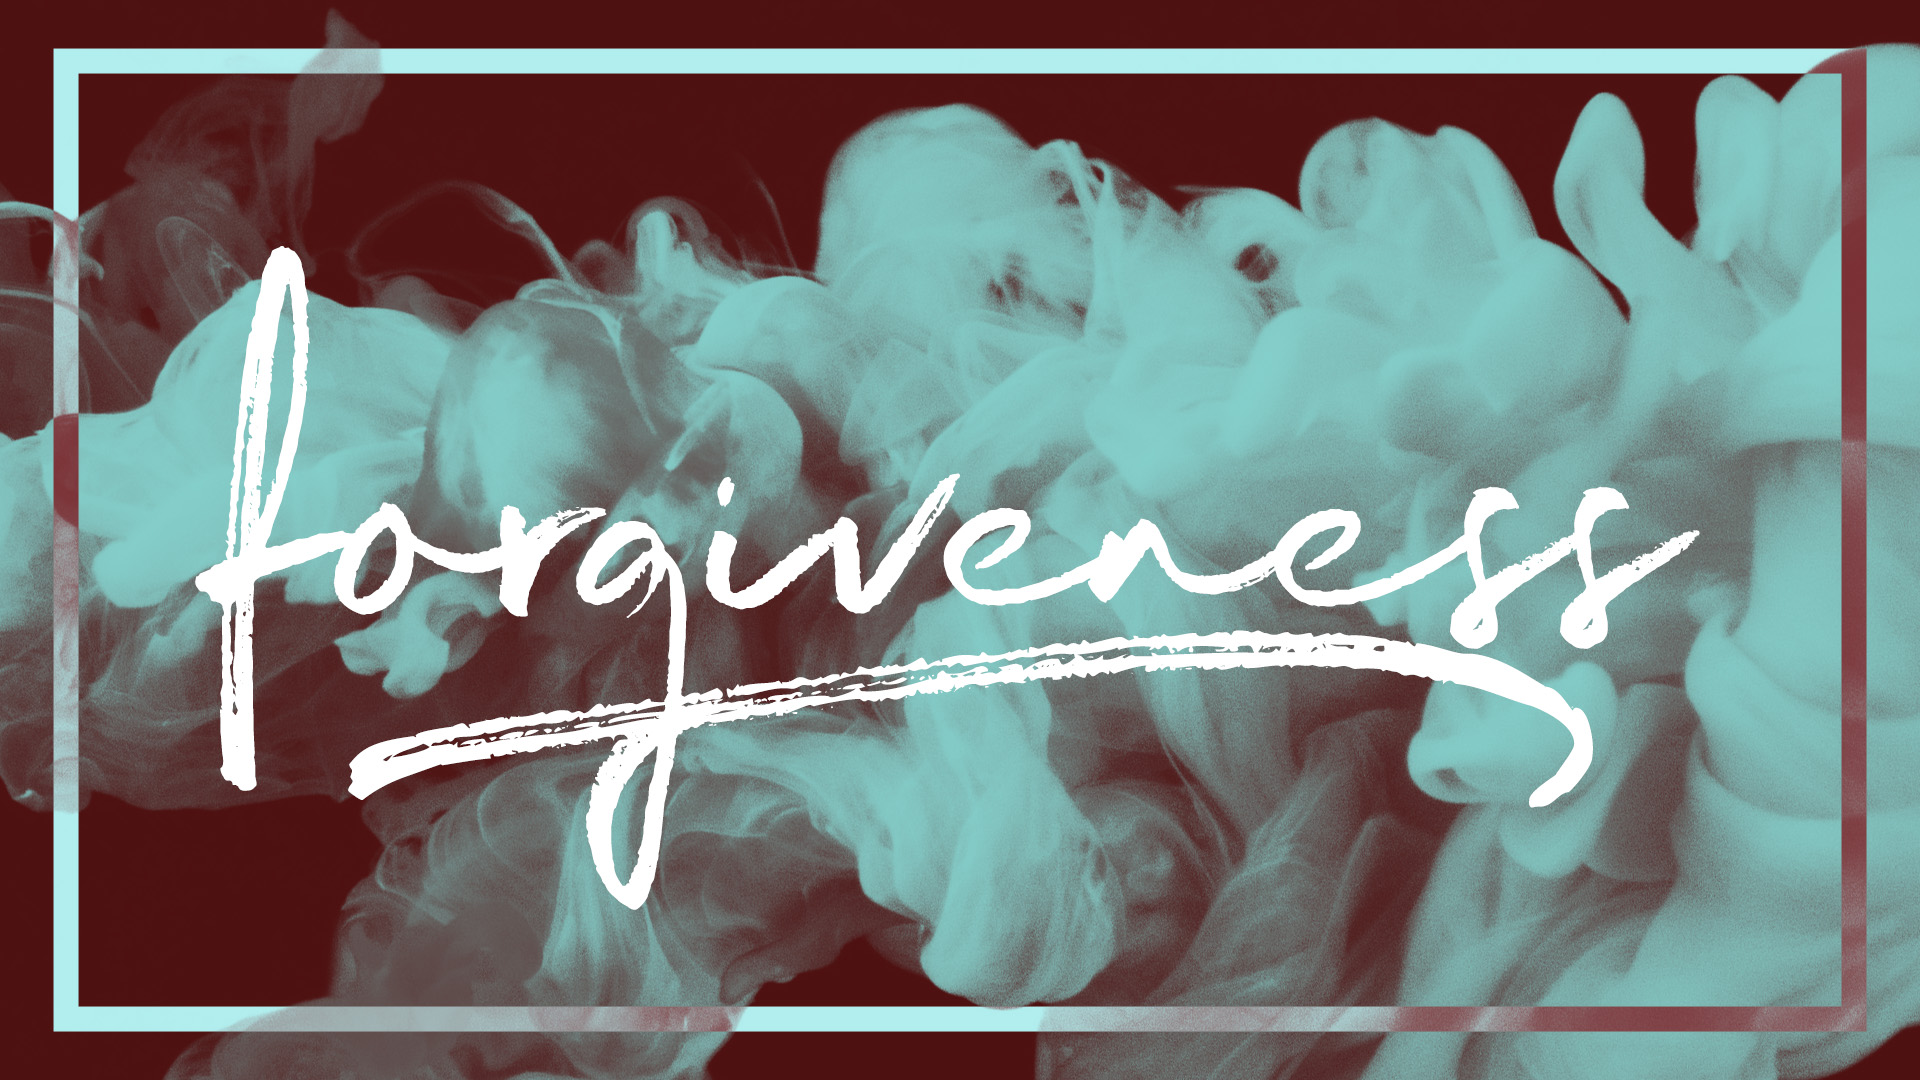 Forgiveness Banner - Picture of Smoke